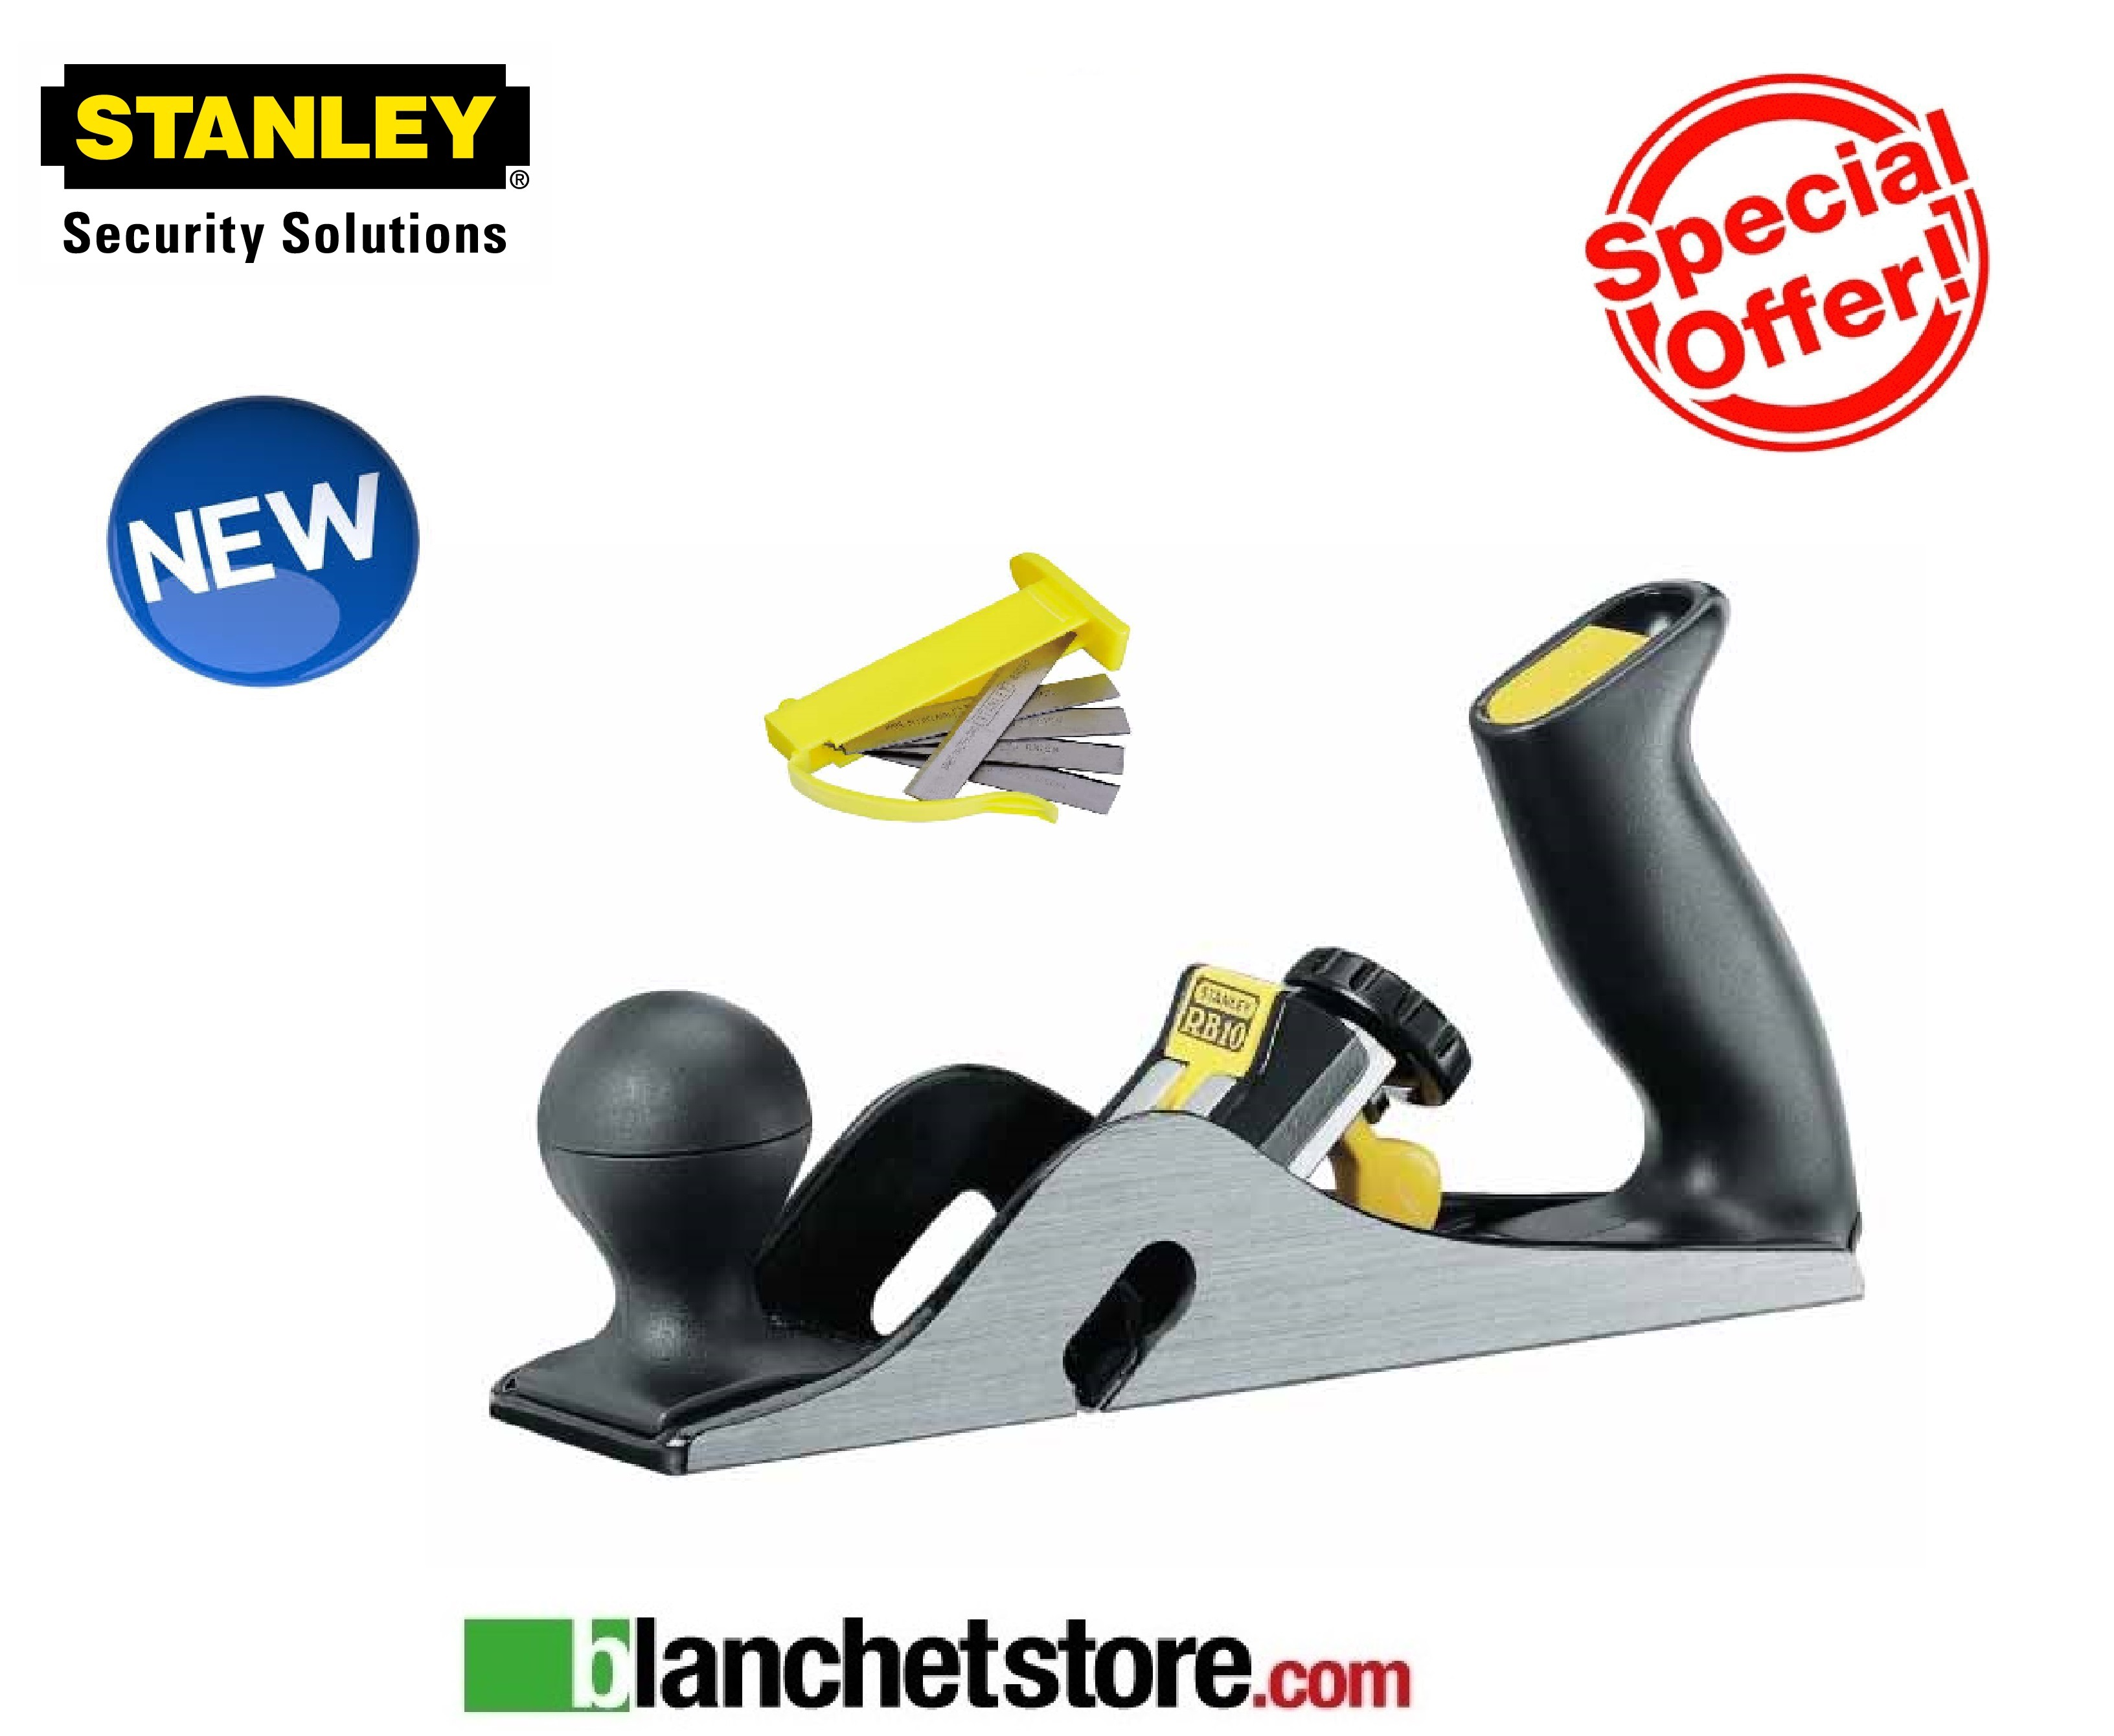 Pialla Stanley multiuso a lame intercambiabili 12-100 RB 10